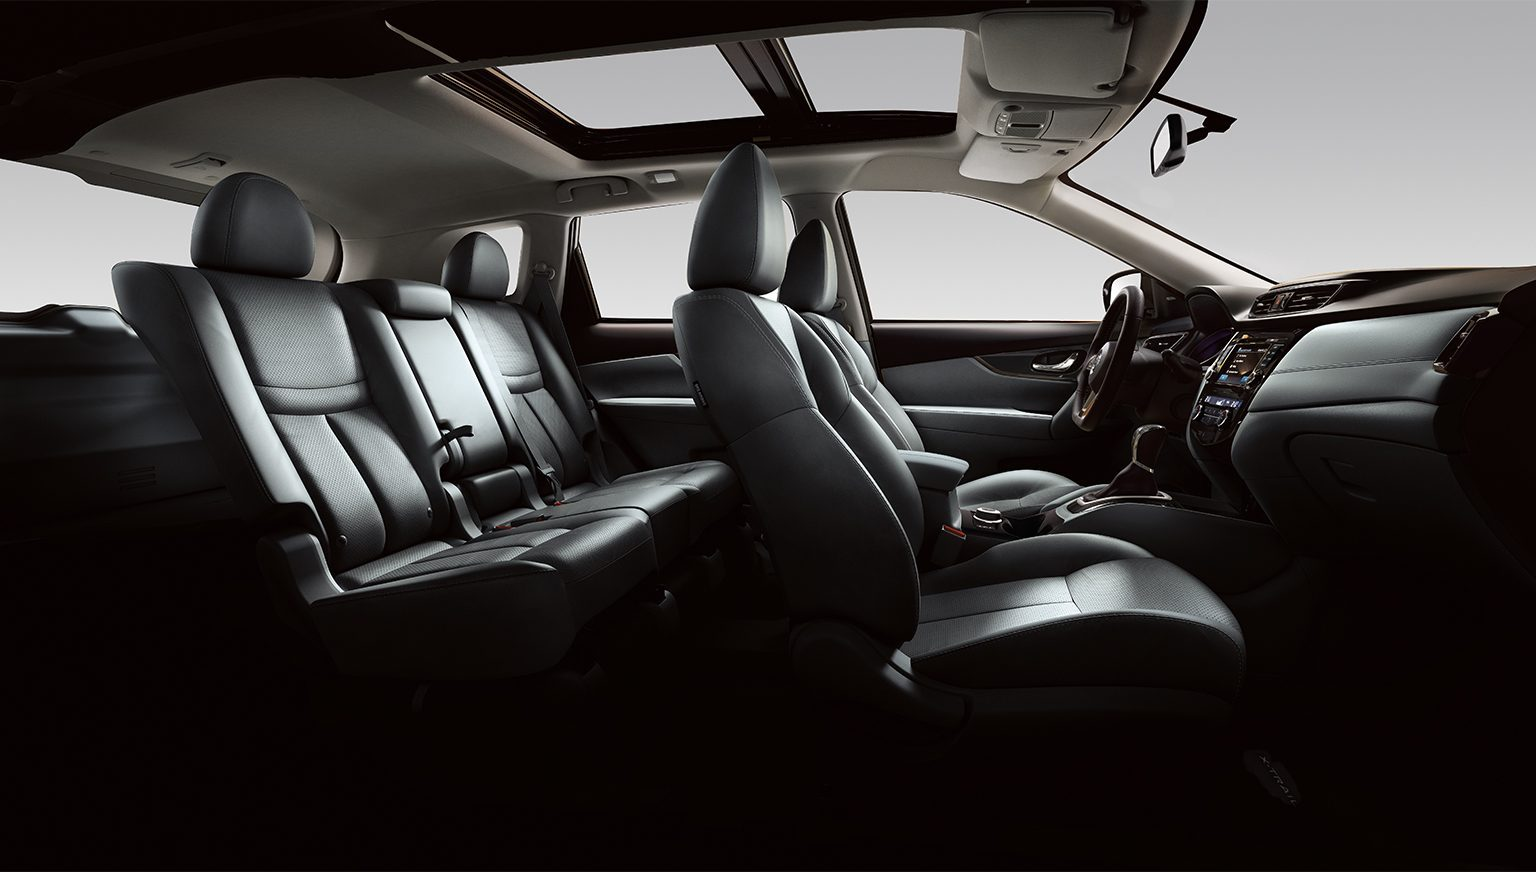 X-Trail large interior profile - black leather